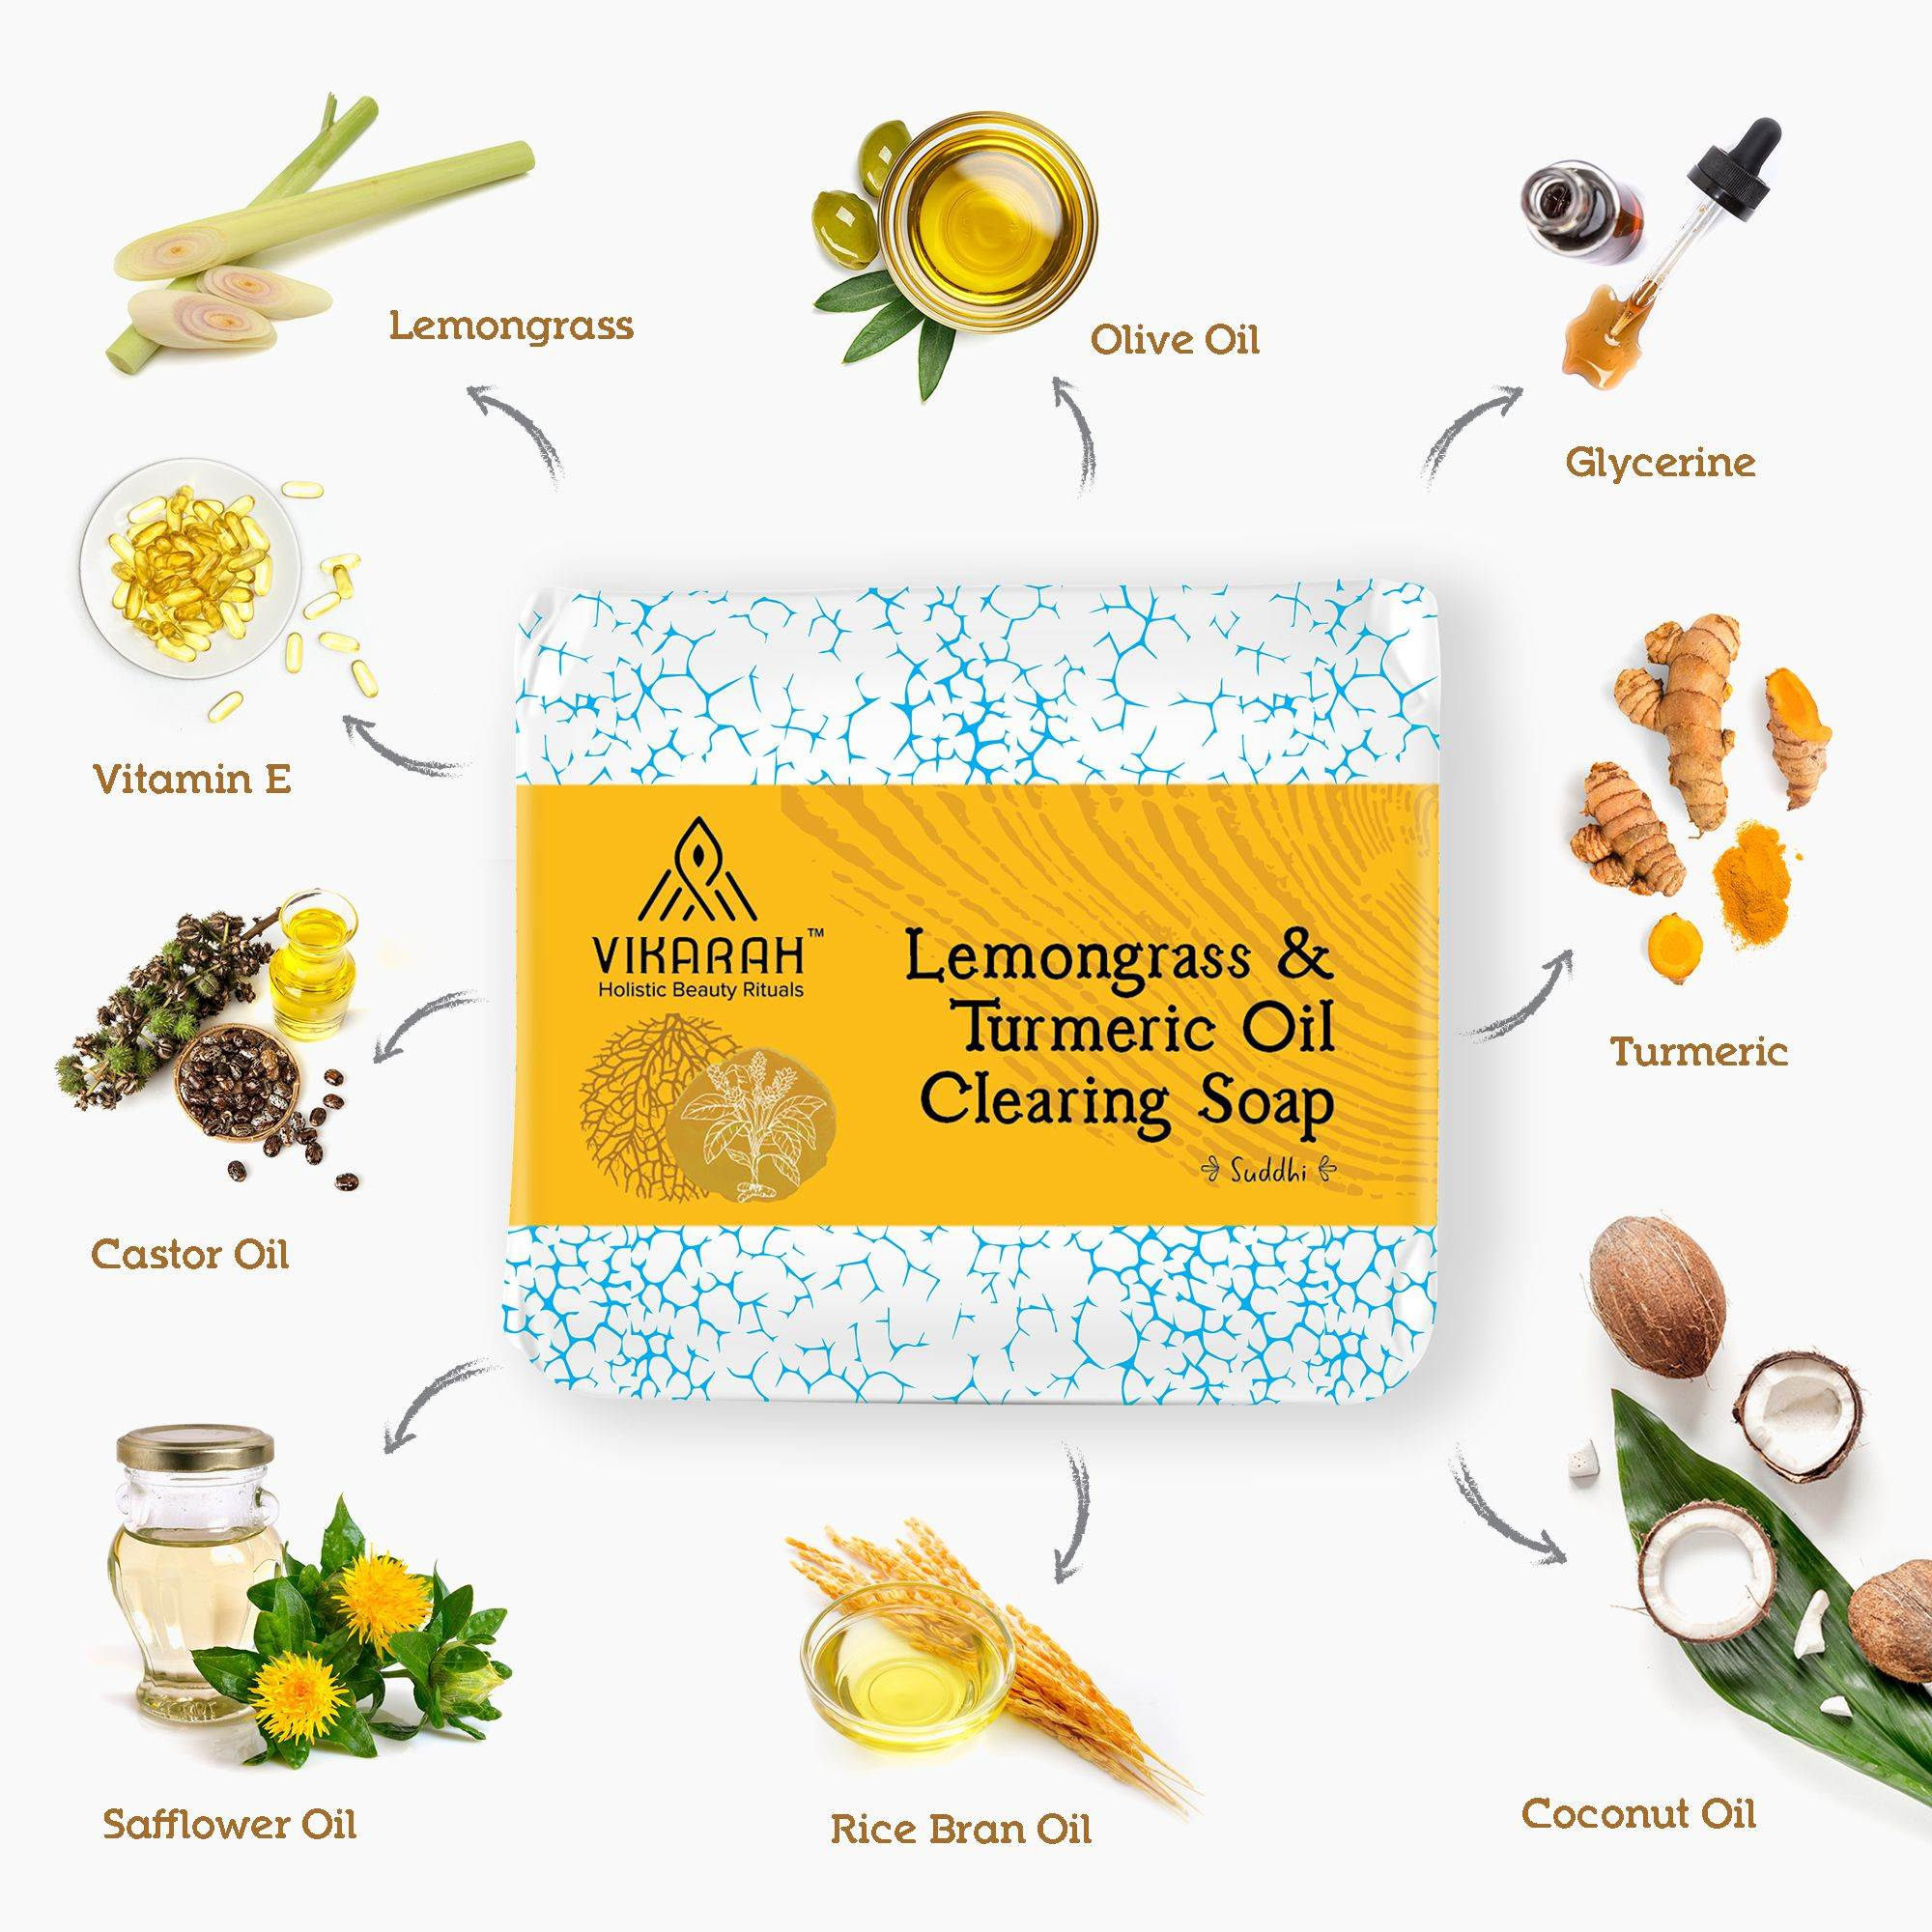 Lemongrass and Turmeric Oil Clearing Soap